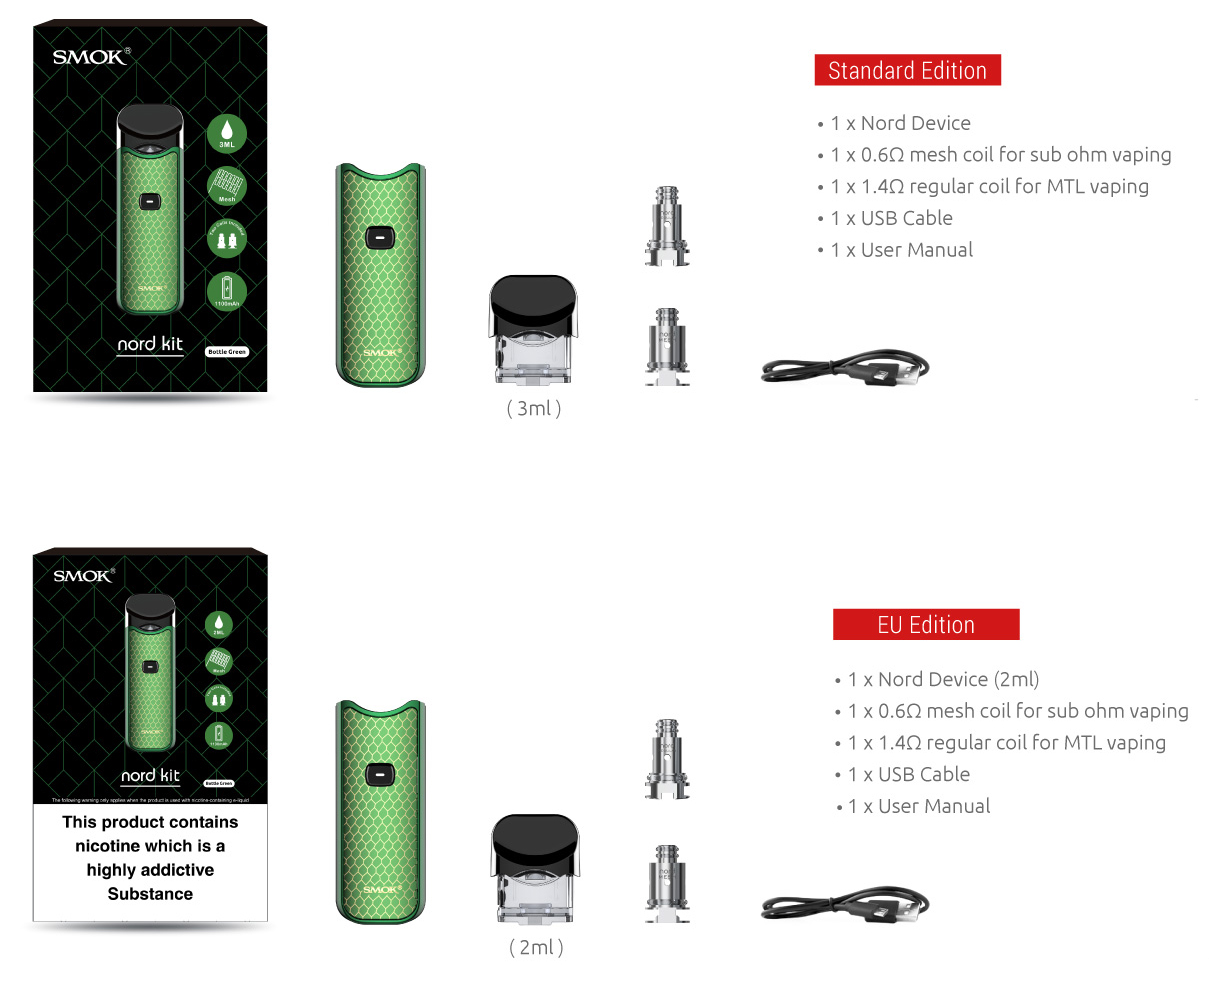 NORD KIT - SMOK® Innovation keeps changing the vaping experience!